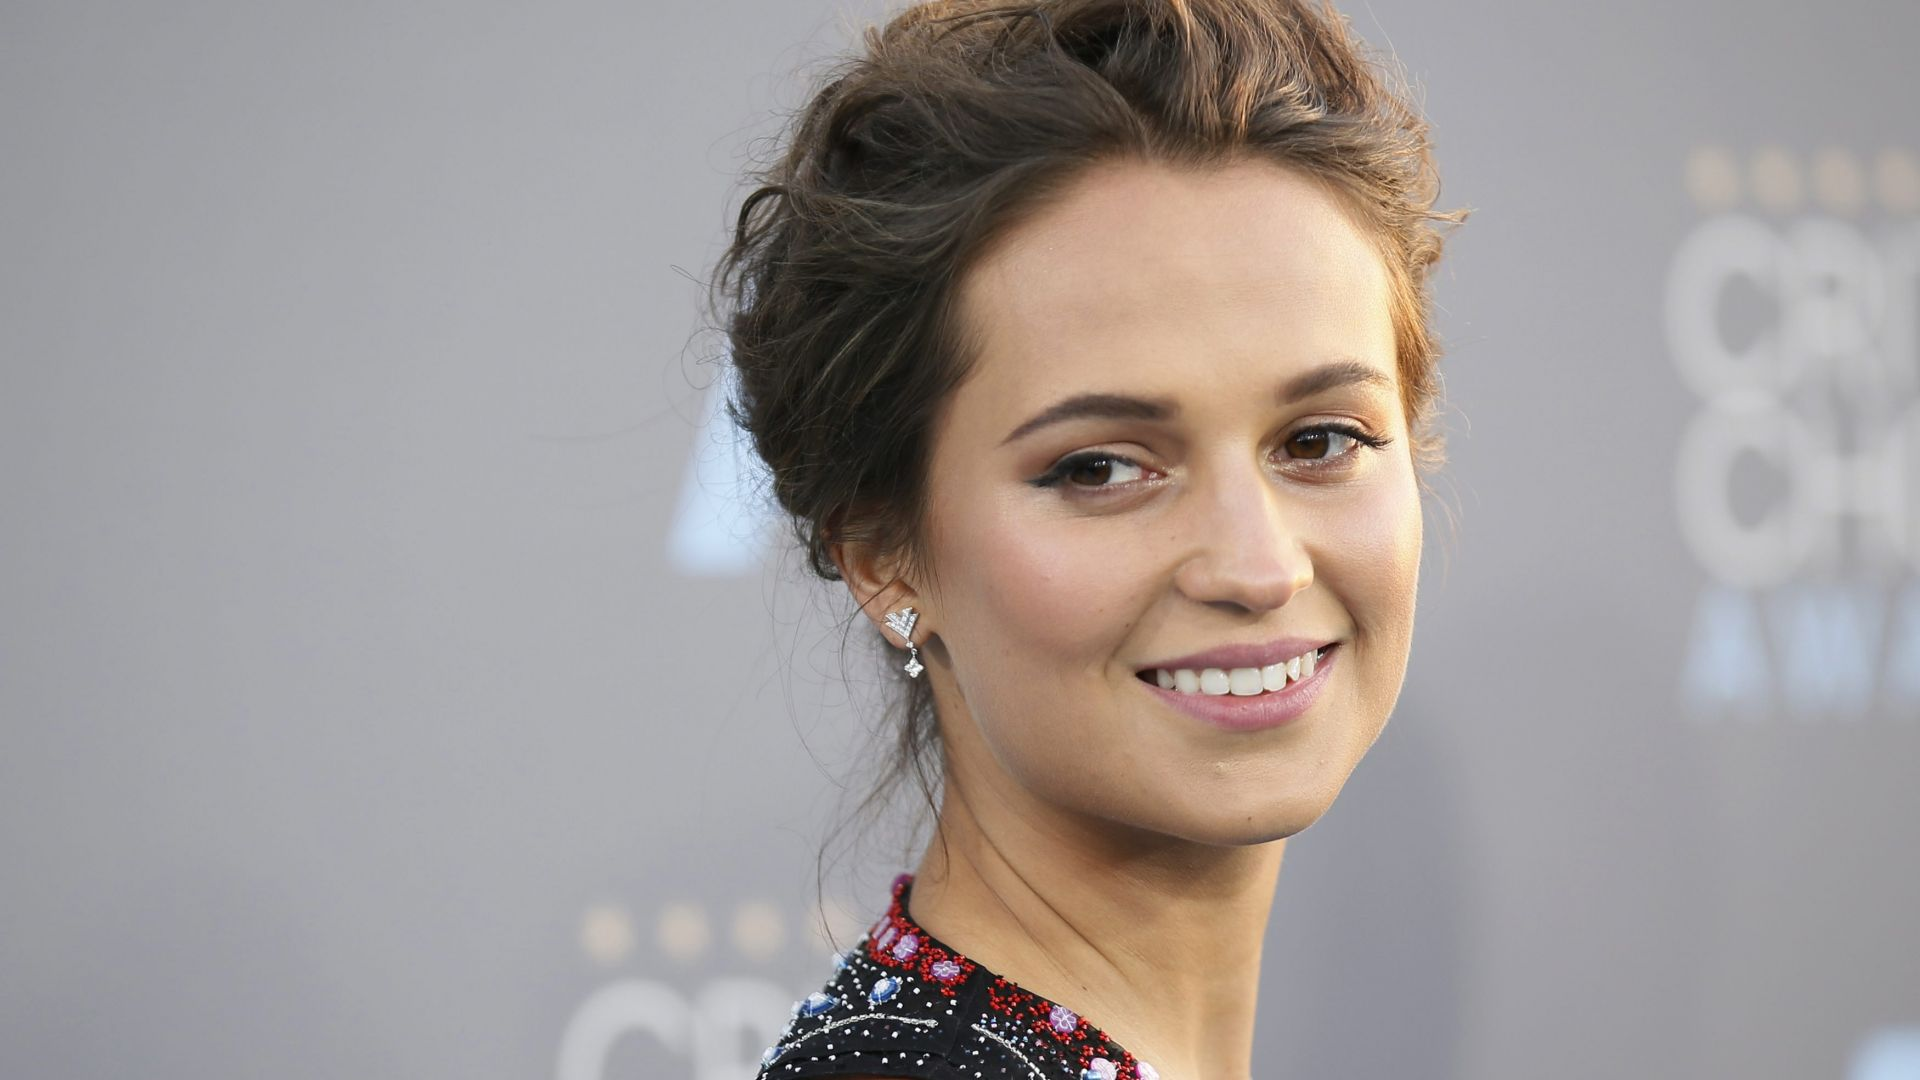 Alicia Vikander, 4k, photo (horizontal)